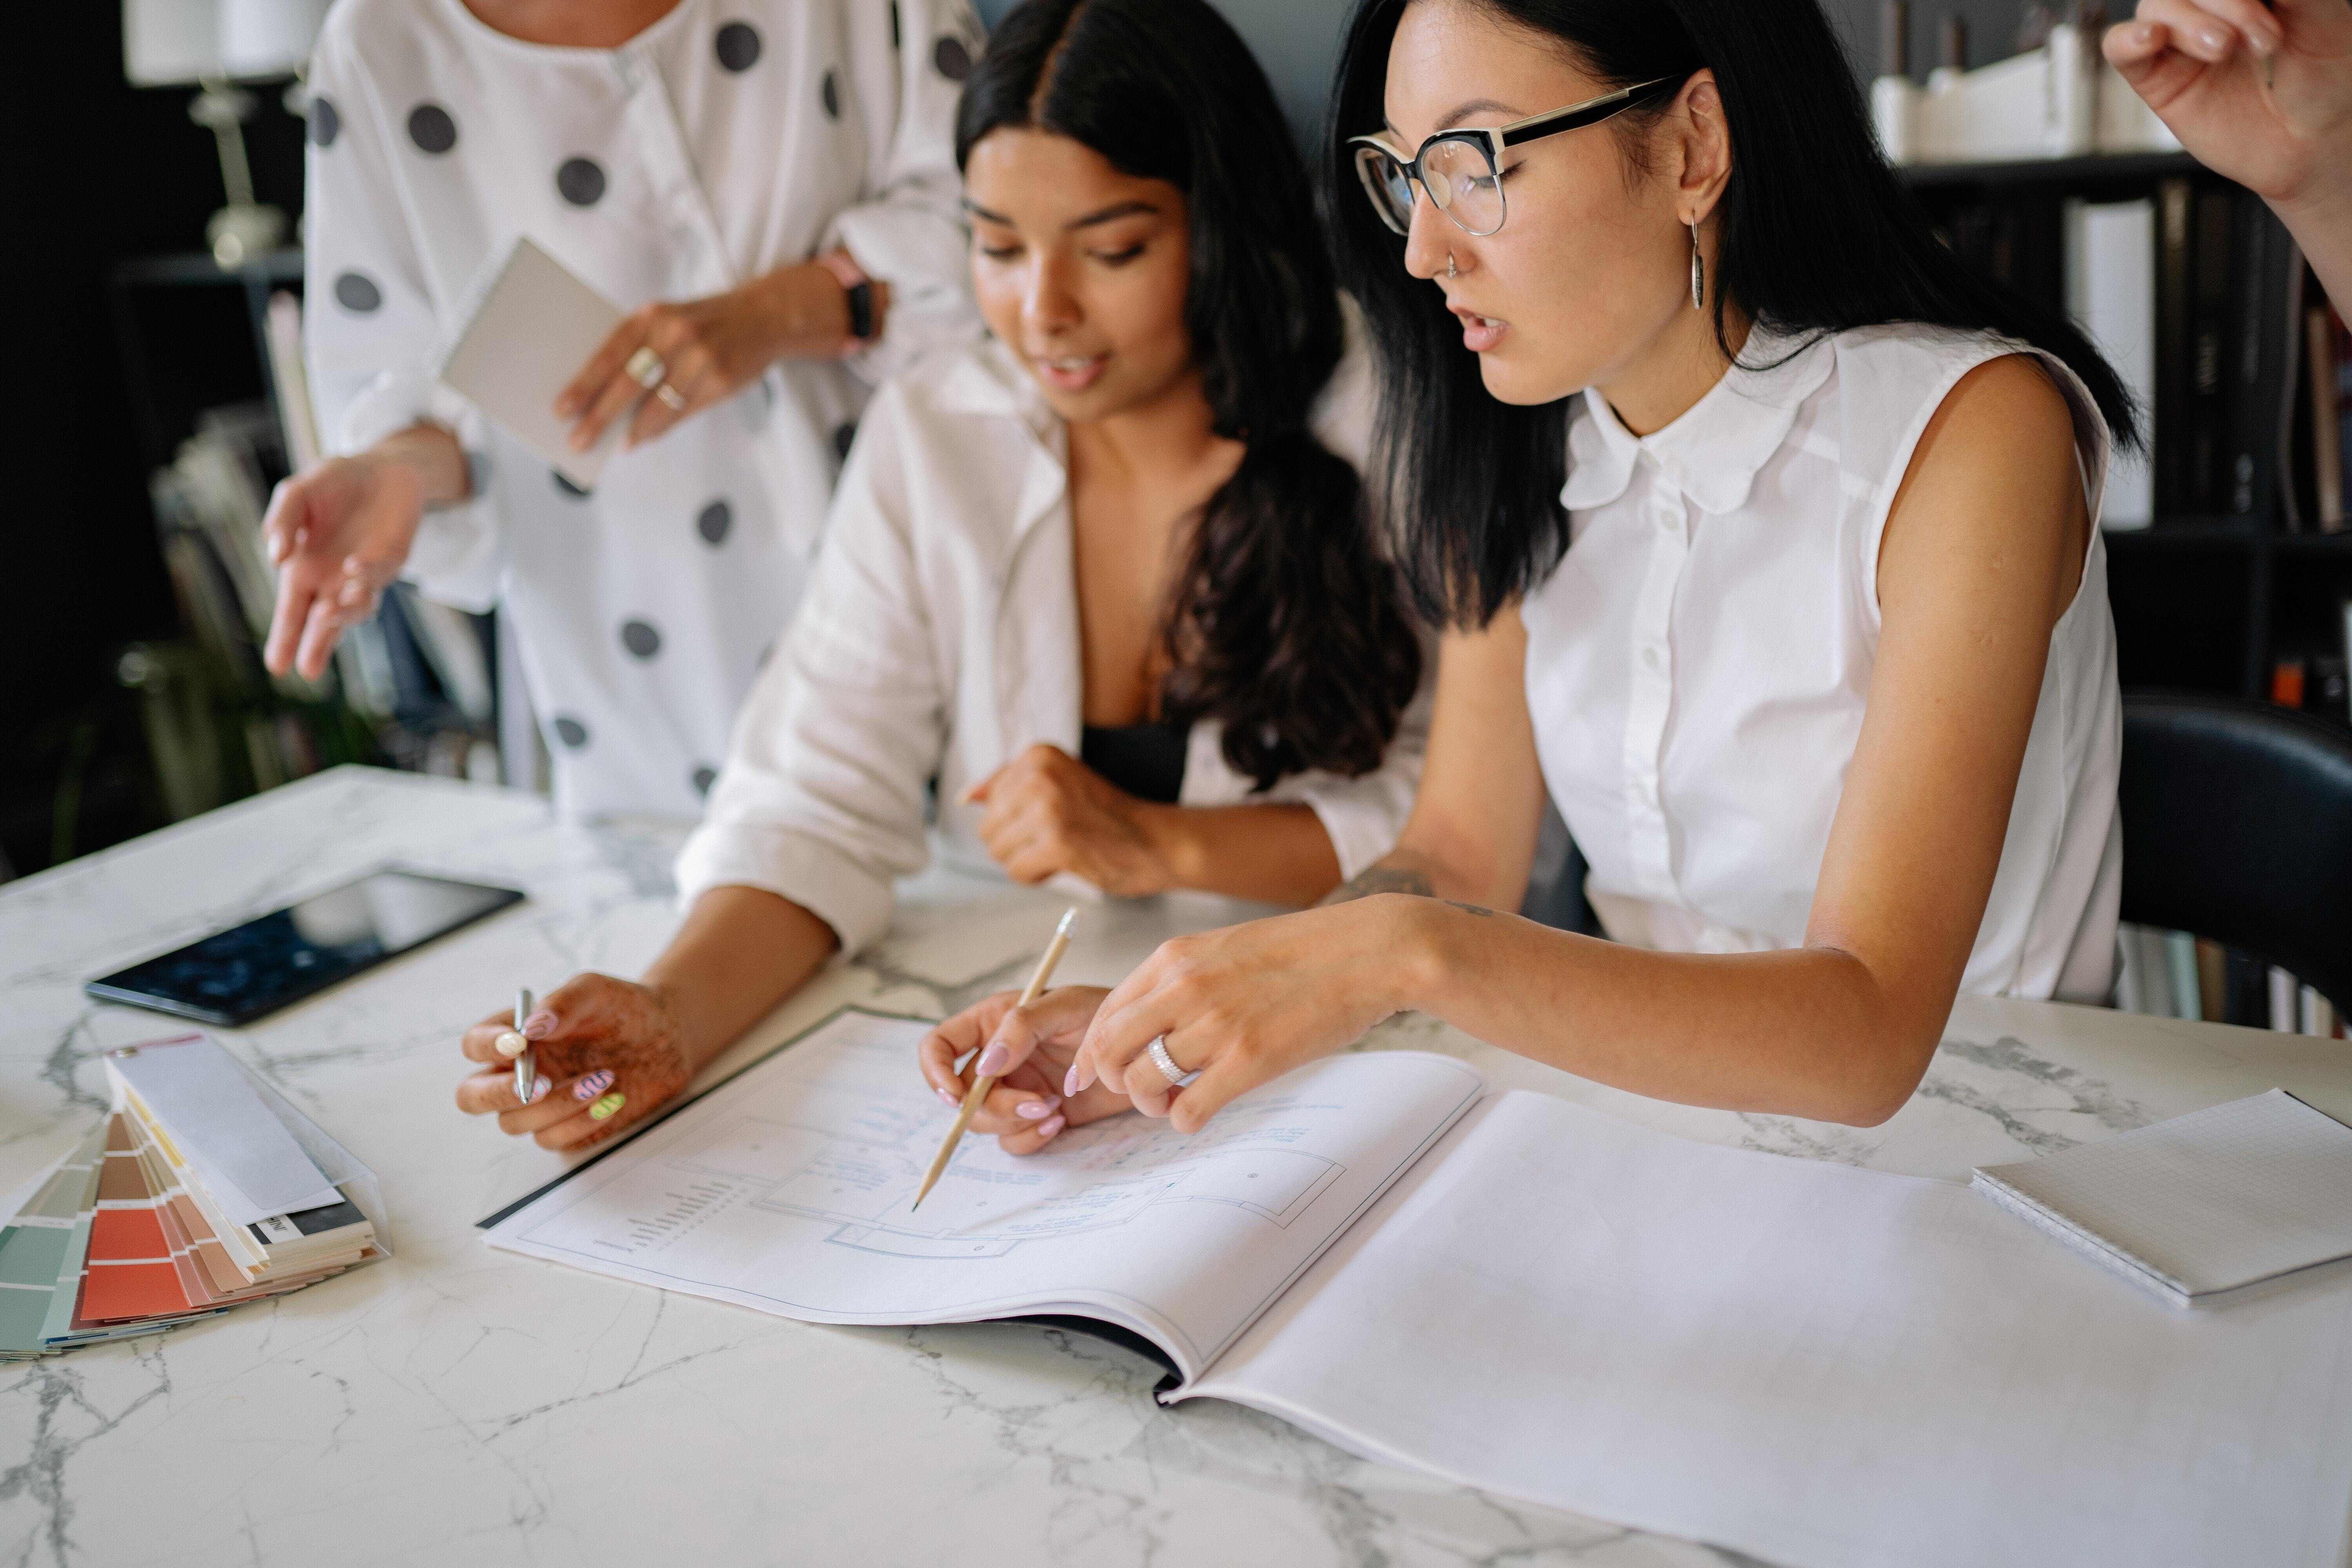 Female coworkers talk over designs and paint samples, each wearing a white blouse.